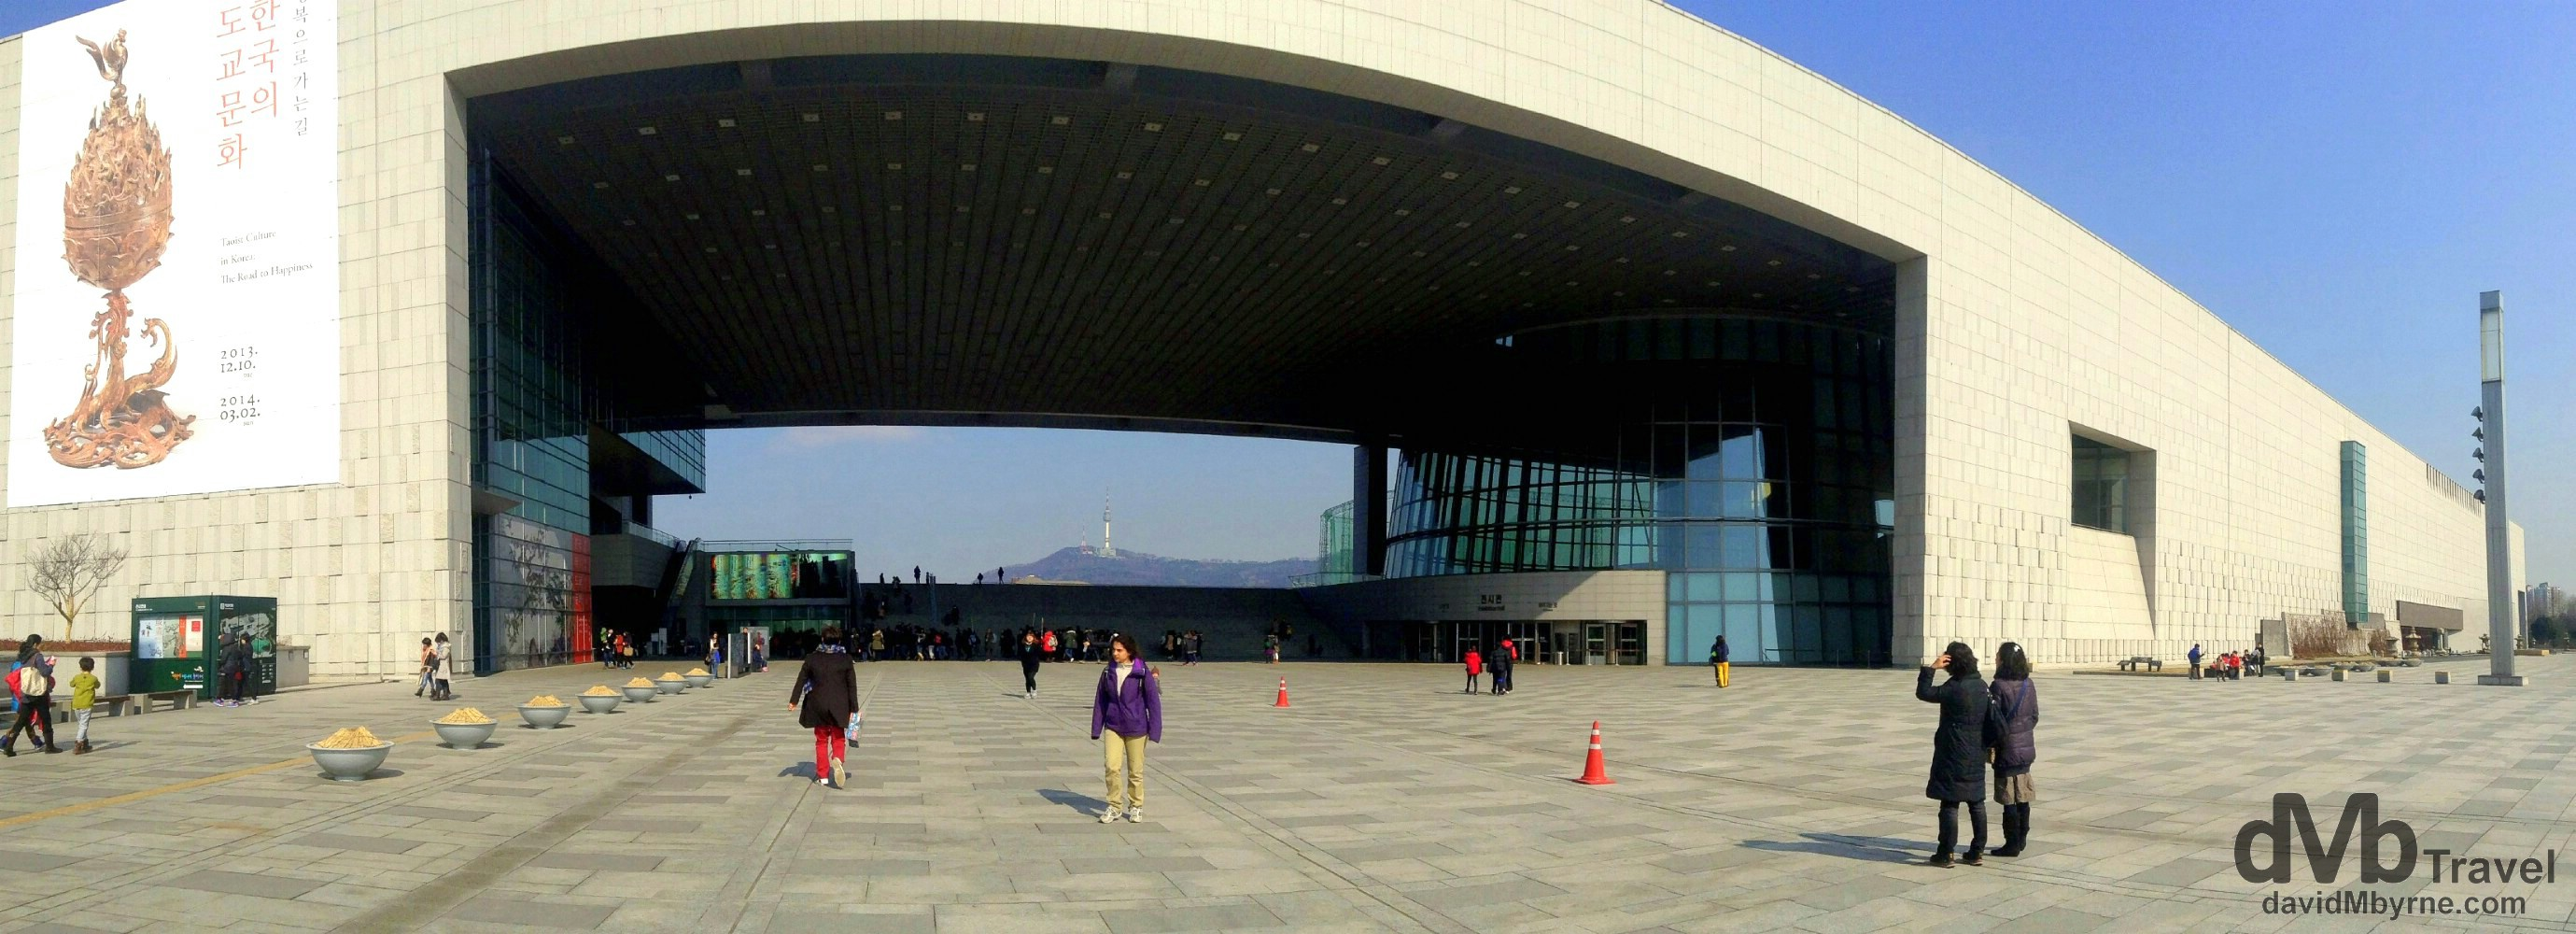 National Museum of Korea, Seoul, South Korea